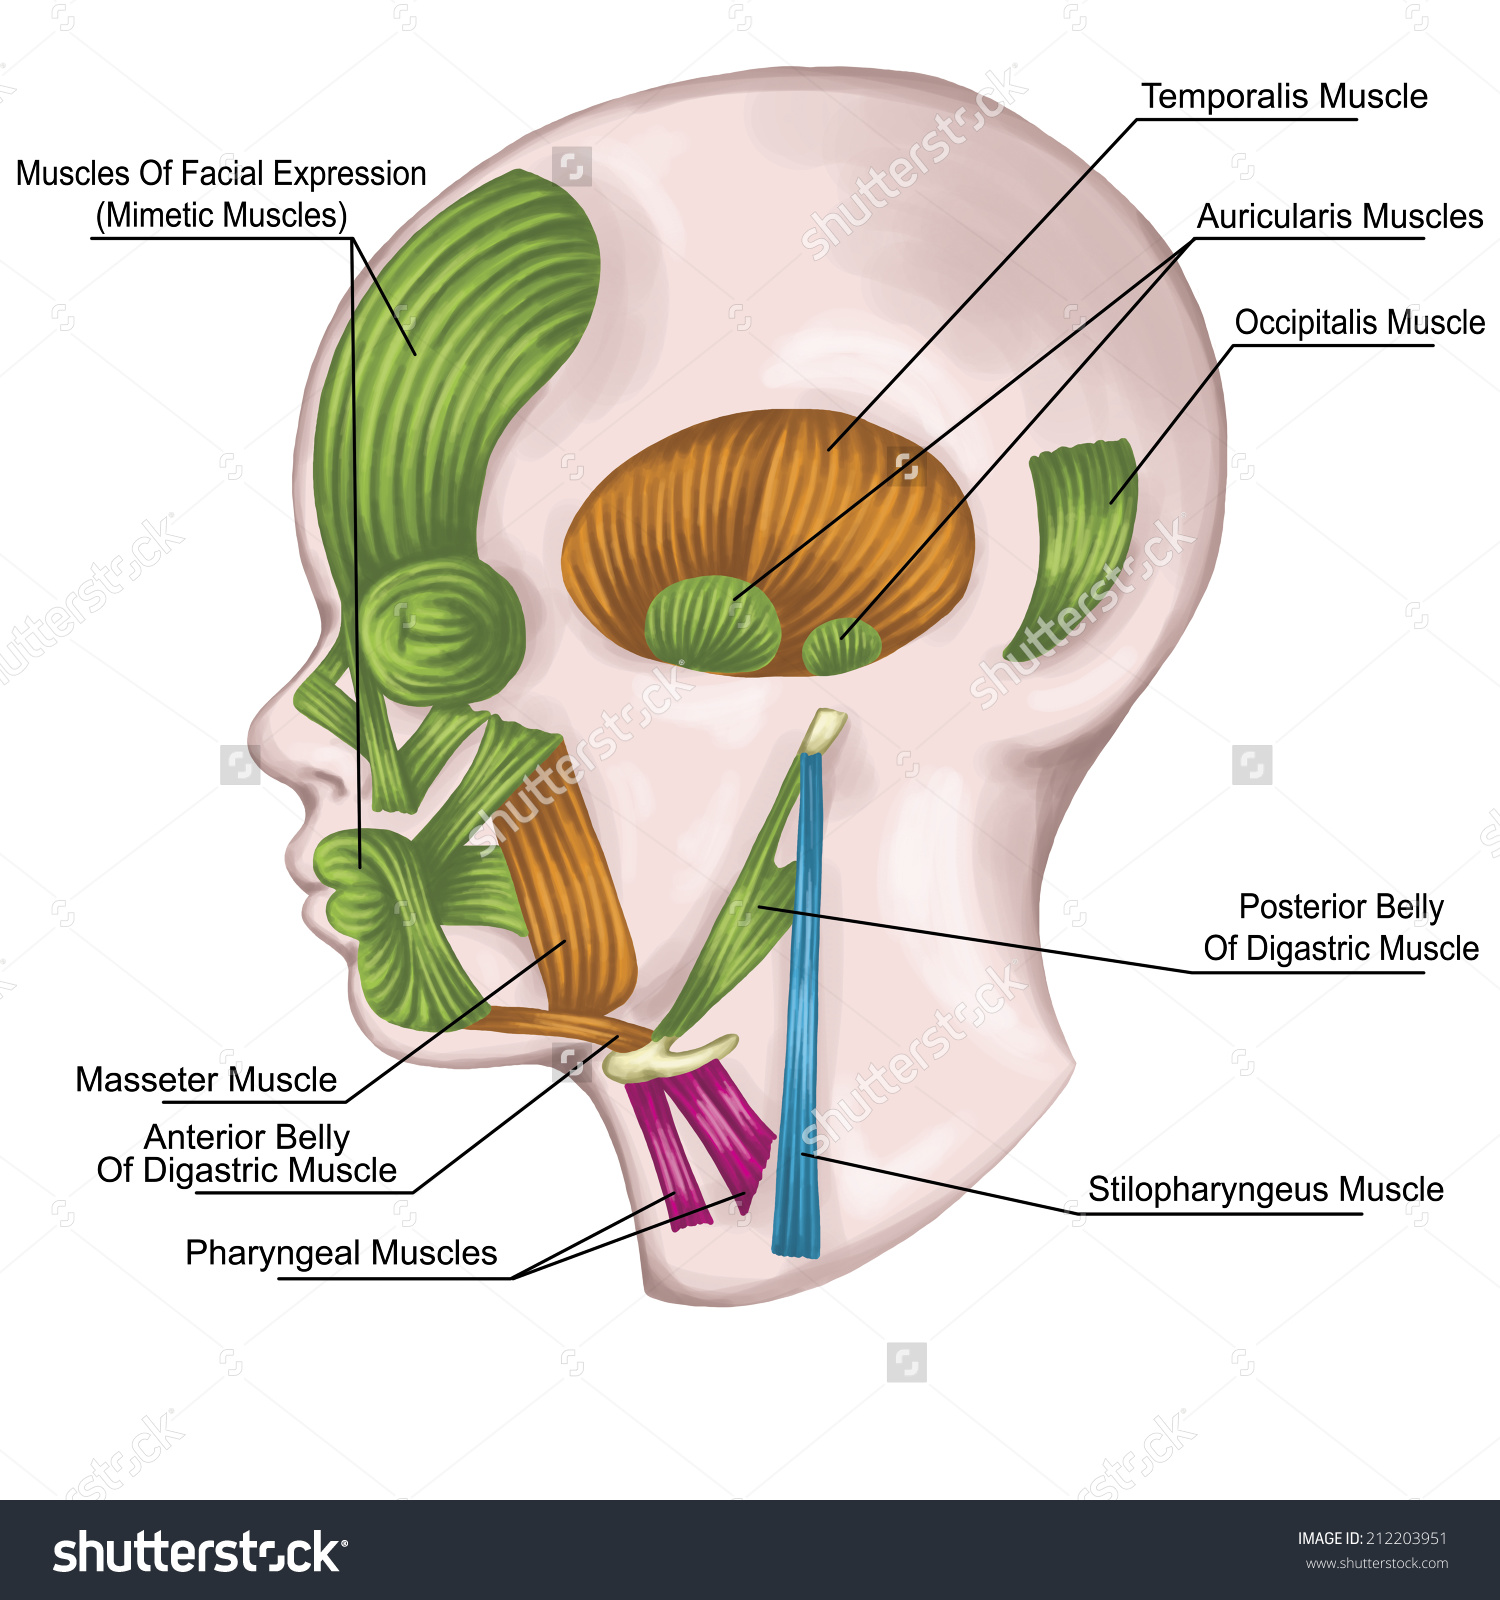 System Pharyngeal Branchial Arches Afte Sadler Stock Illustration.